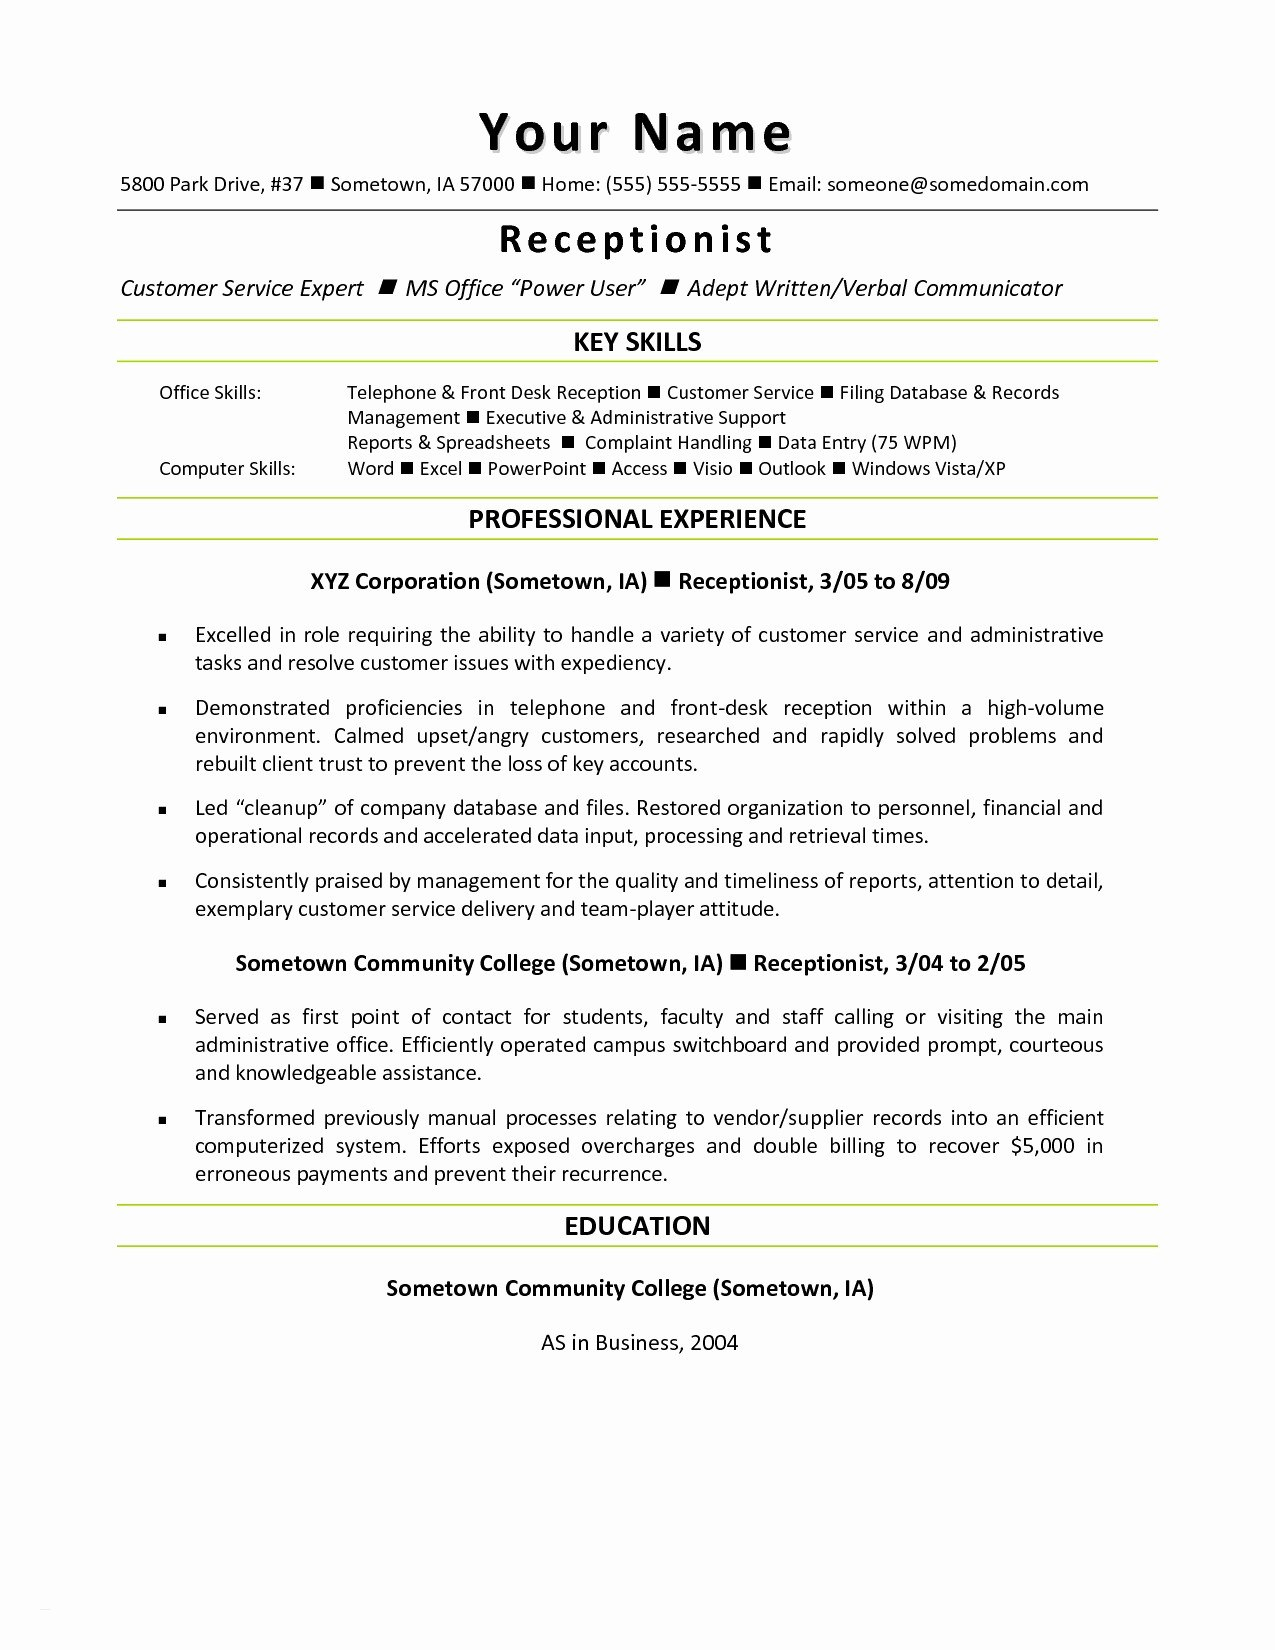 Letter Outline Template - Resume Outline Template New Resume Mail format Sample Fresh